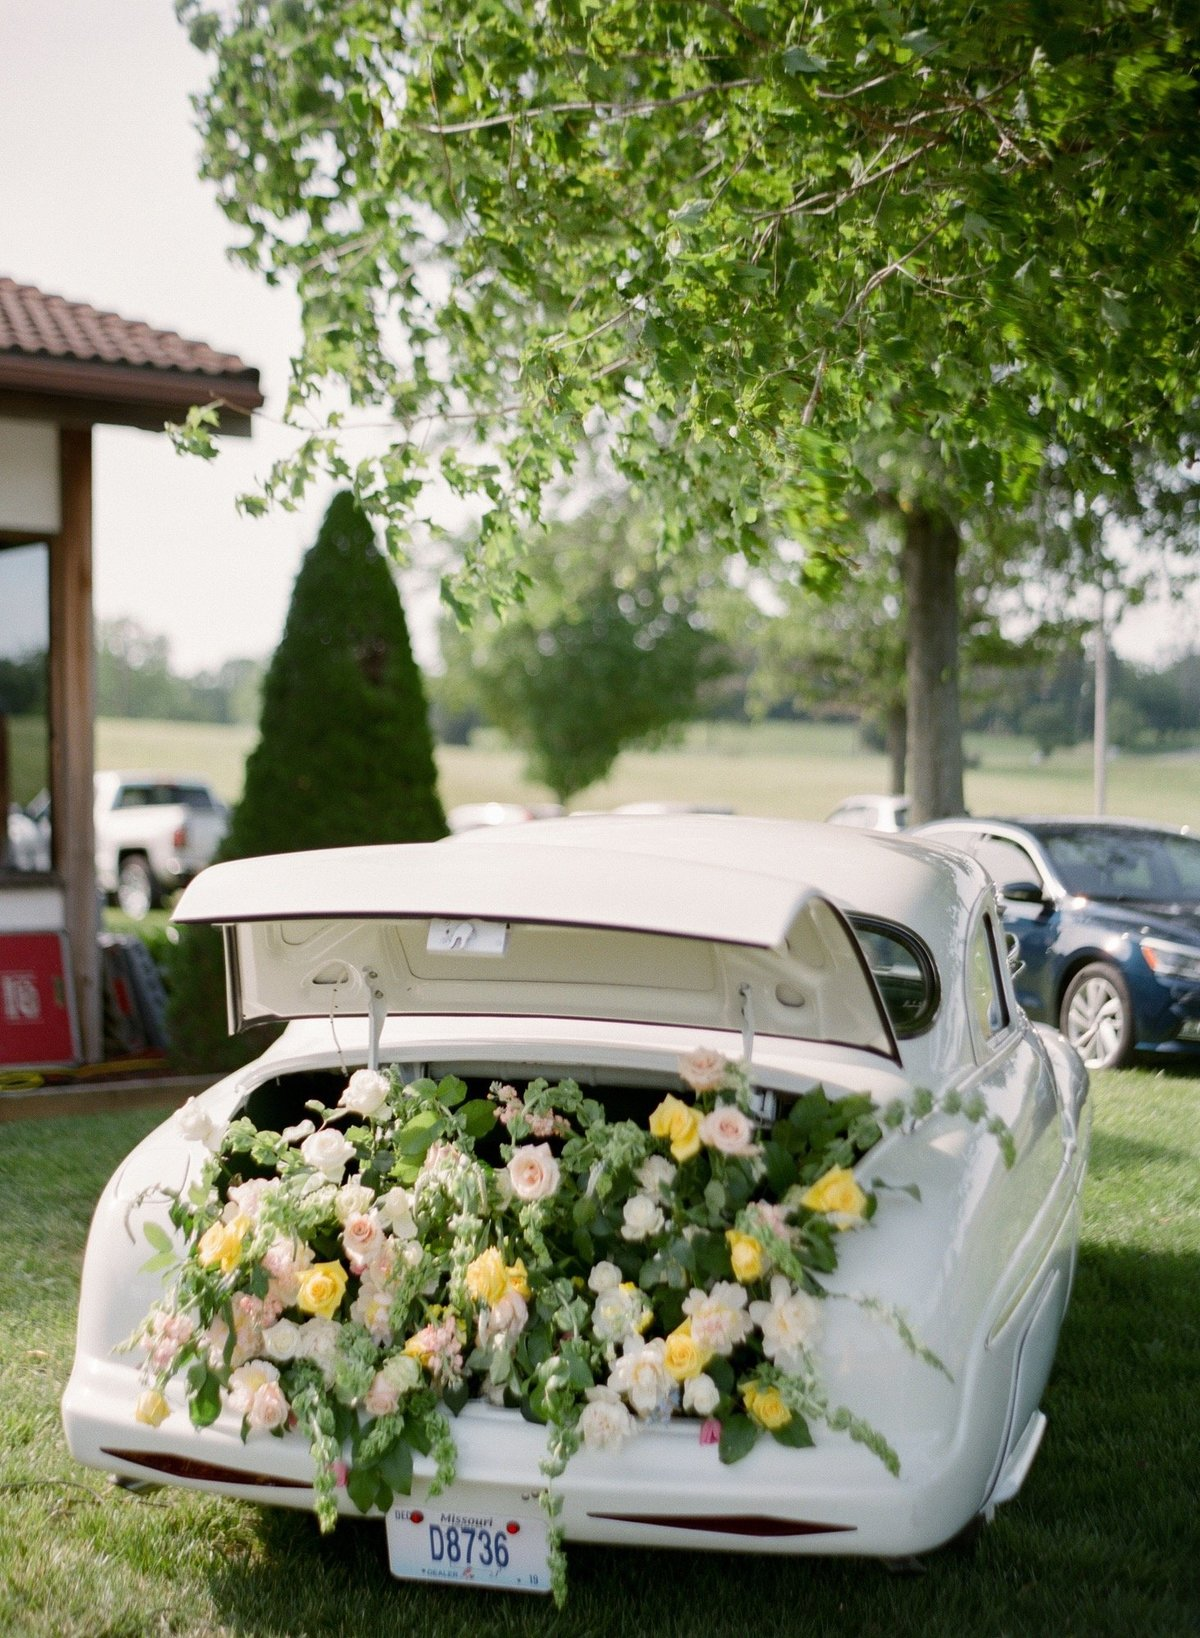 hillary-j-events-st-louis-weddings-flowers-trunk-antique-car